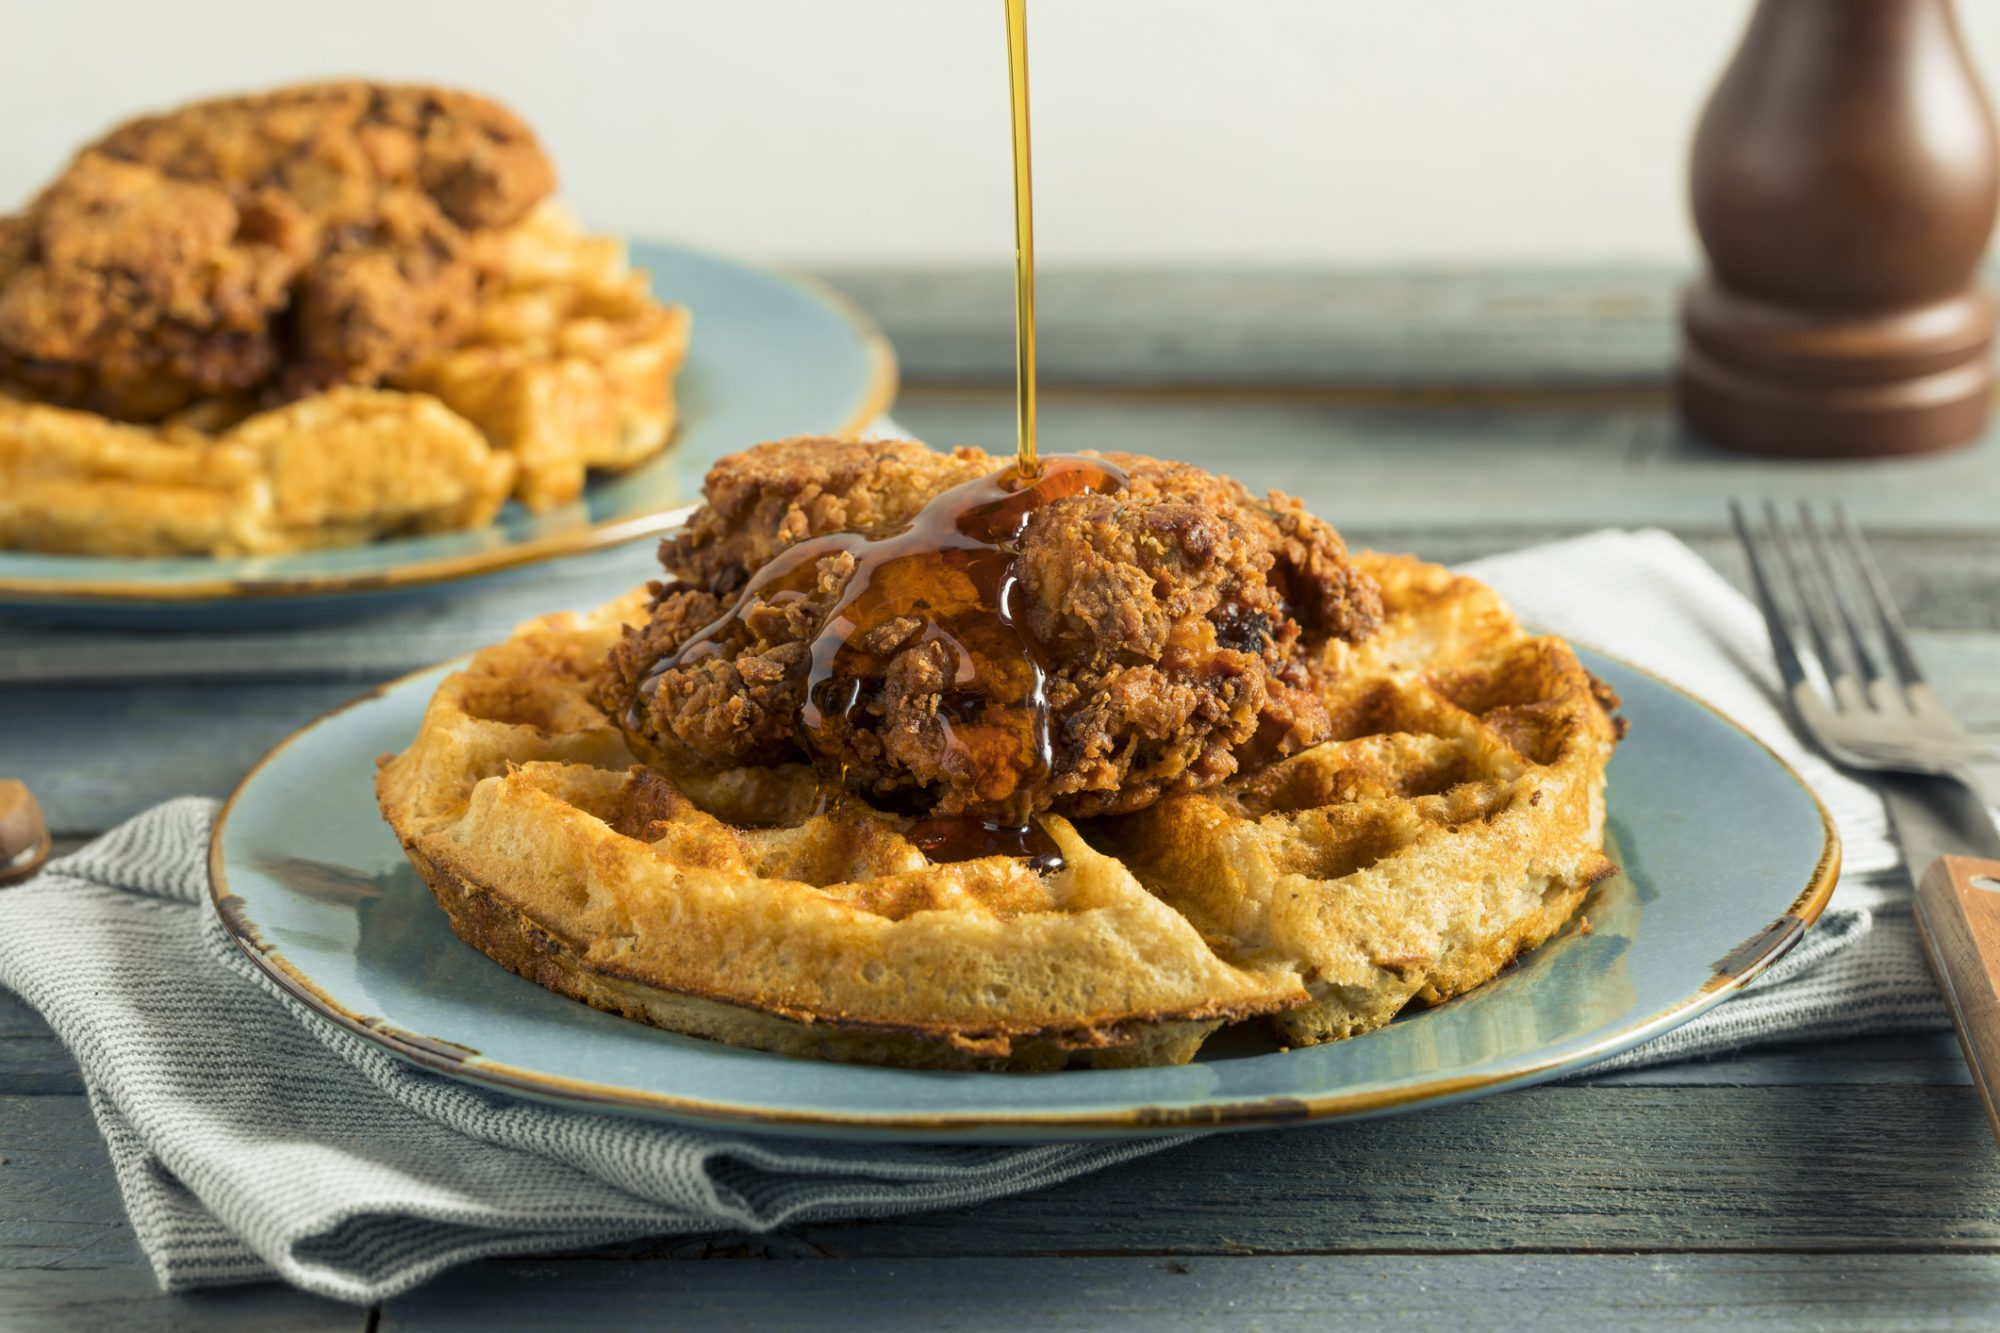 Chicken and Waffles Cereal Is Better Than Going to Brunch | Allrecipes